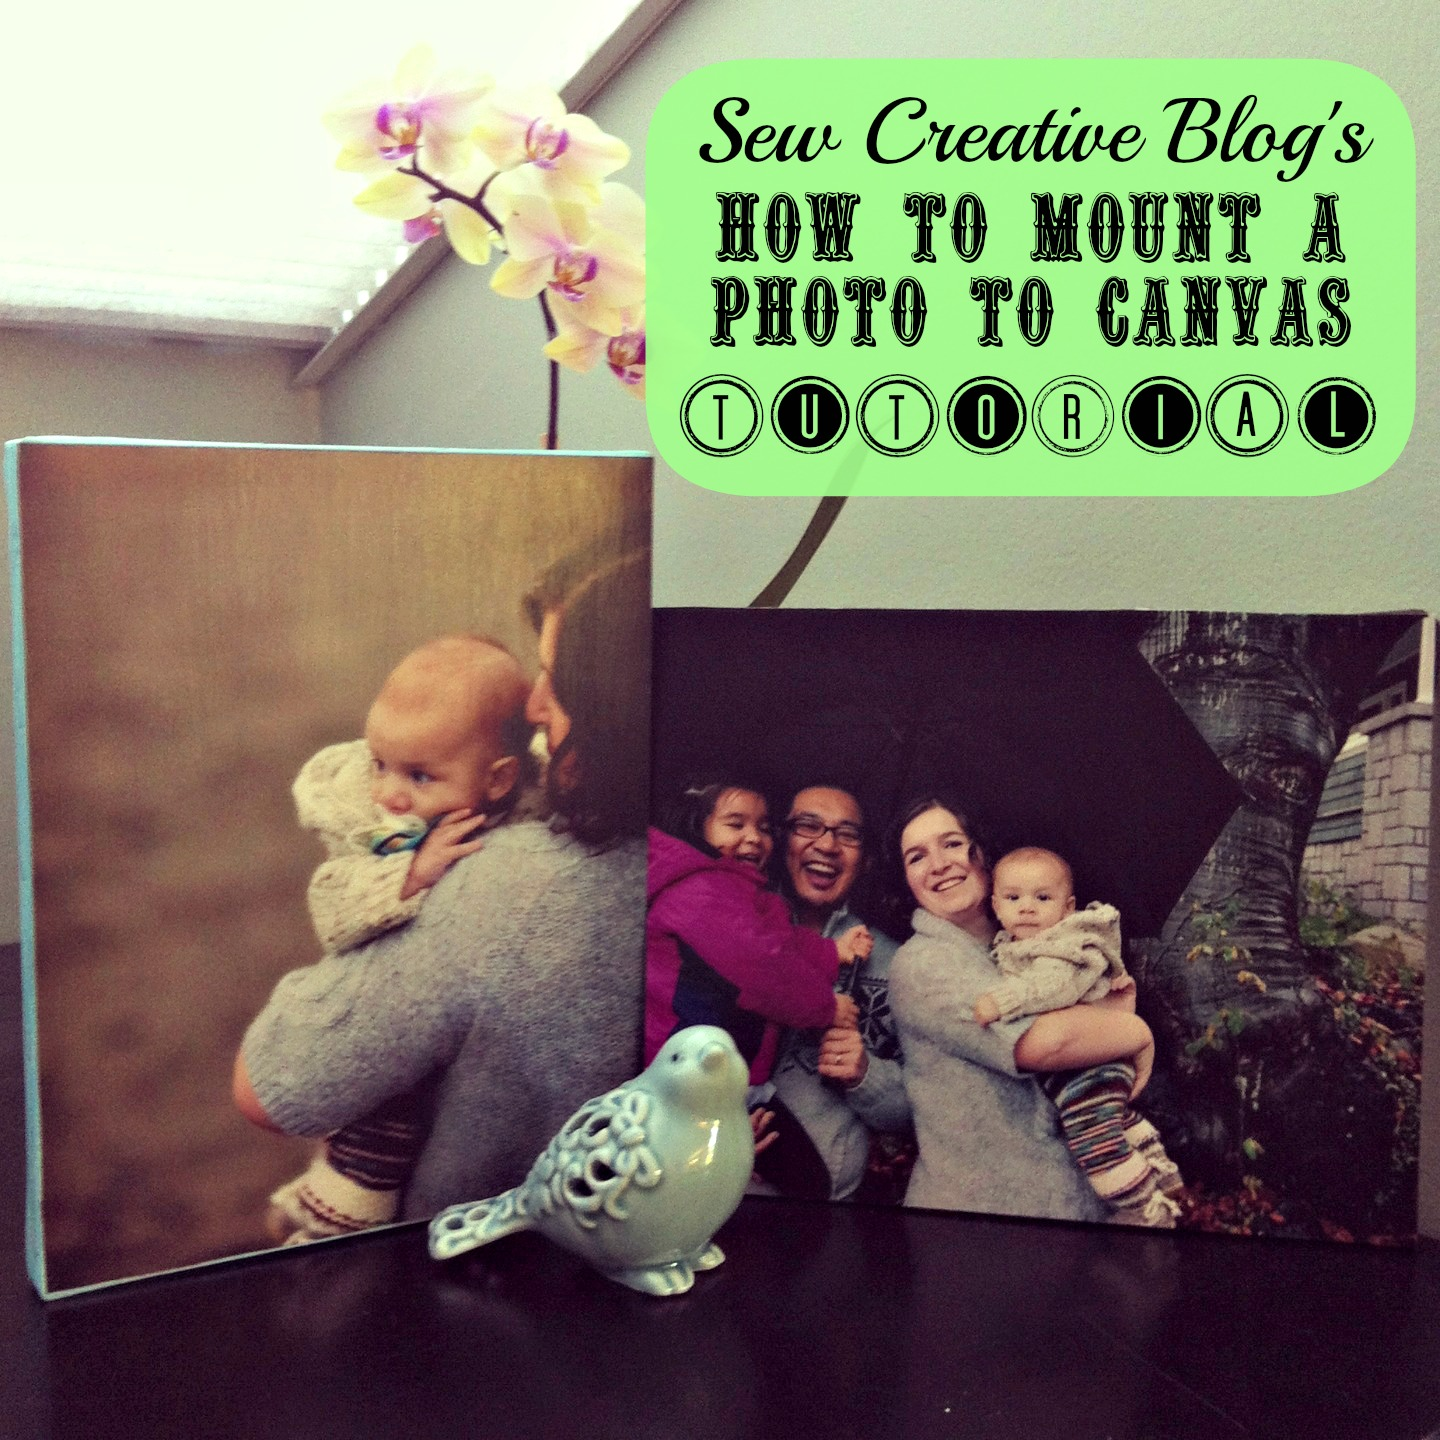 How to mount a photo to canvas tutorial A great handmade gift for under $5.00